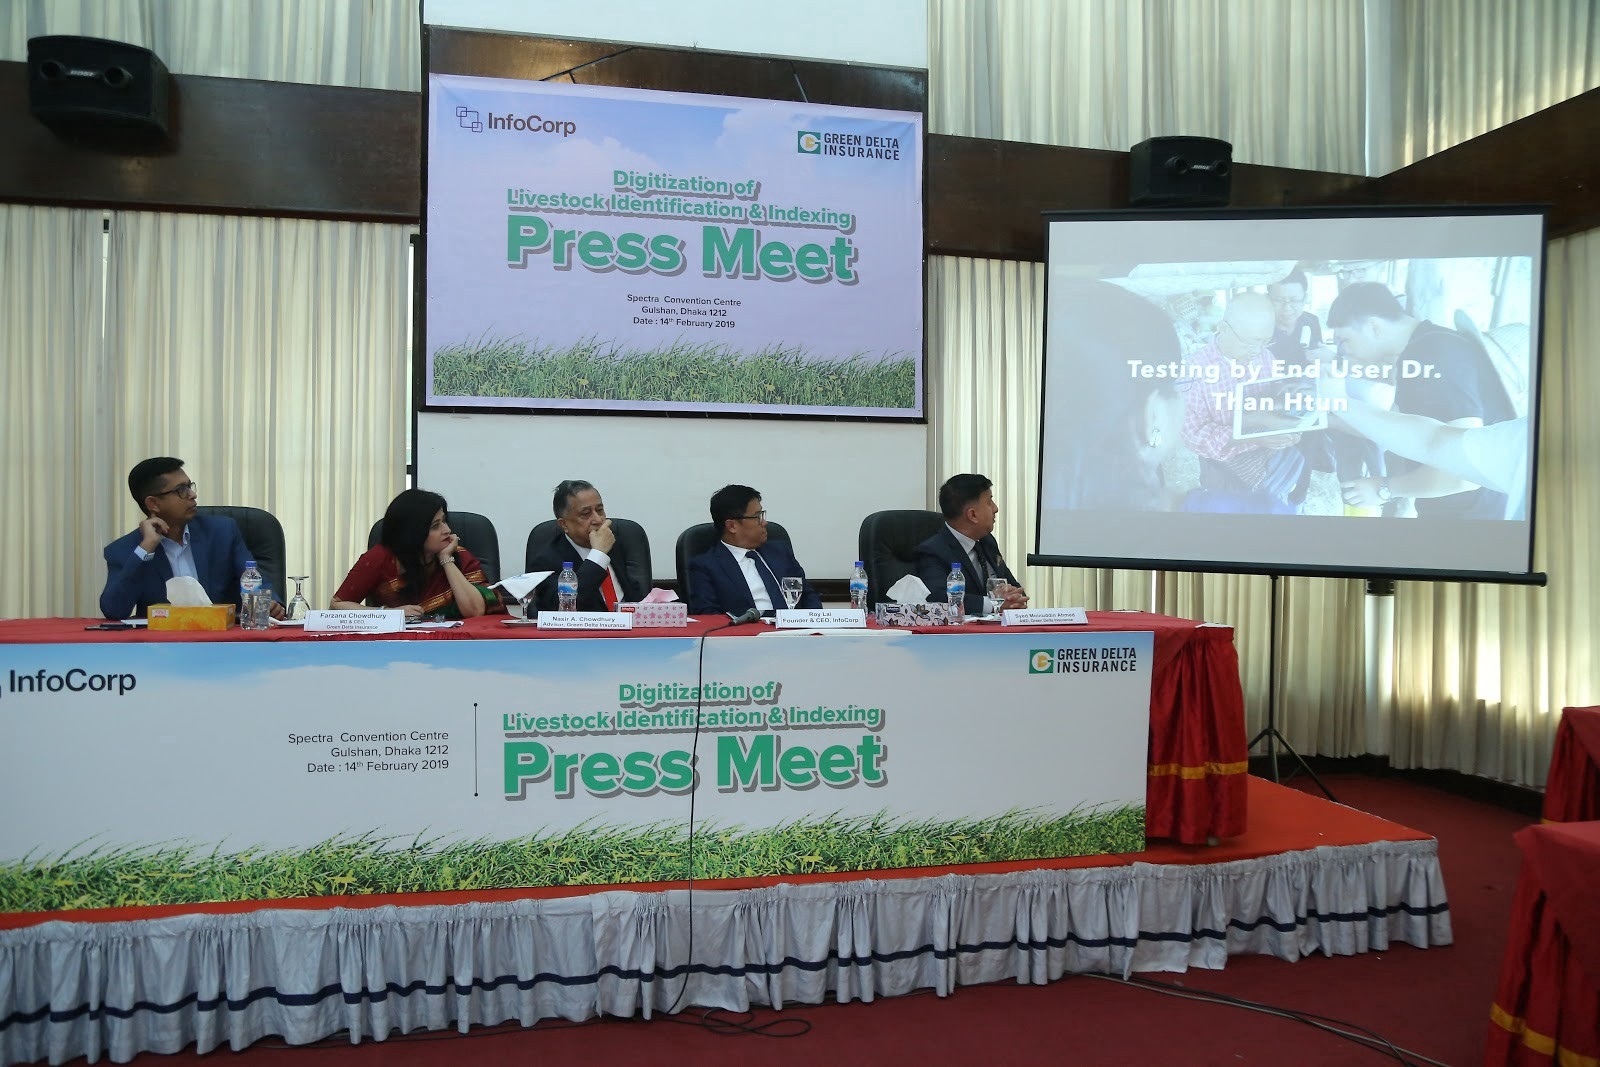 All attention on introduction of InfoCorp. From right to left: Mr. Md. Moniruzzaman Khan, Ms. Farzana Chowdhury, Mr. Nasir A.